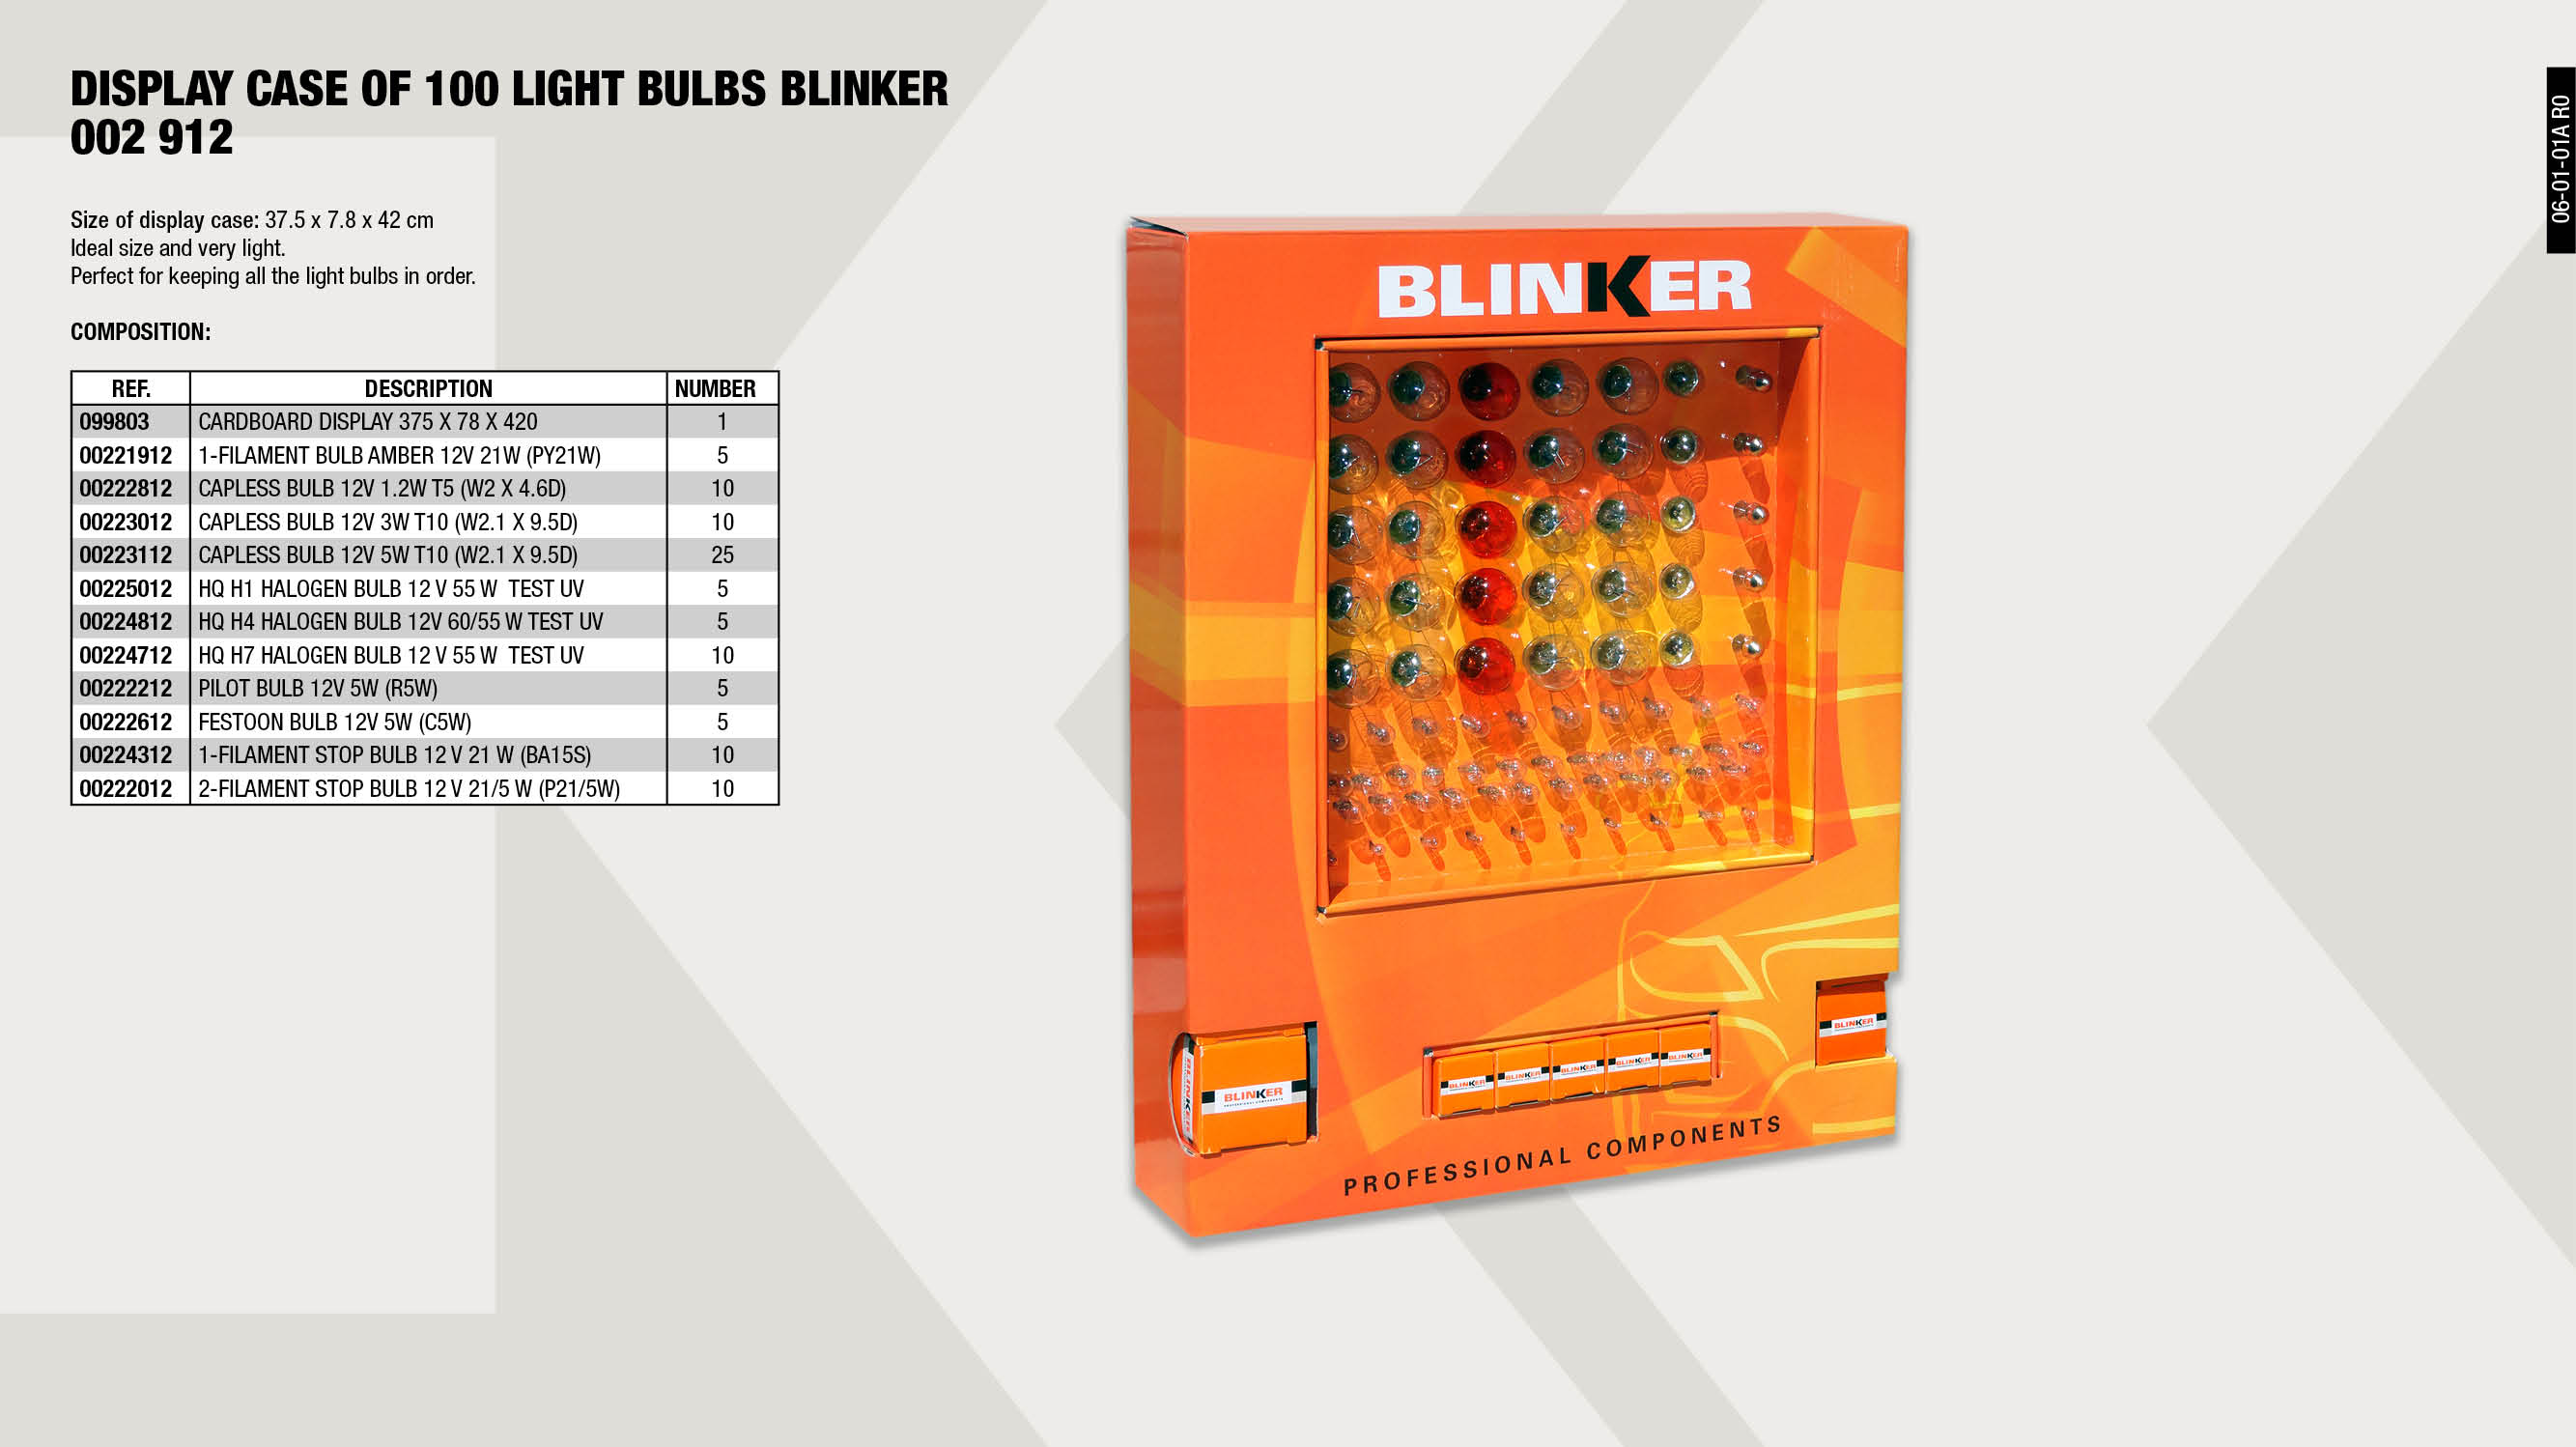 LAMPS EXHIBITOR BLINKER 100                                 ,  									STOP LAMP 1 FILAMENT 12V. 21W. (BA15S)                      ,  									PILOTS LAMP 12V. 5W. (R5W)                                  ,  									STOP LAMP 2 FILAMENTS 12V. 21/5W.                           ,  									WEDGE BASE LAMP 12V 5W T-10 (W2.1X9.5D)                     ,  									1 FILAMENT AMBER LAMP 12V. 21W.                             ,  									WEDGE BASE LAMP 12V 1.2W T-5 (W2X4.6D)                      ,  									H7 HALOGENE TEST UV HQ LAMP 12V. 55W.                       ,  									FESTOONS LAMP 12V. 5W. (C5W)                                ,  									H1 HALOGENE TEST UV HQ LAMP 12V. 55W.                       ,  									H4 HALOGENE TEST UV HQ LAMP 12V. 60/55W.                    ,  									WEDGE BASE LAMP 12V 3W T-10 (W2.1X9.5D)                     ,